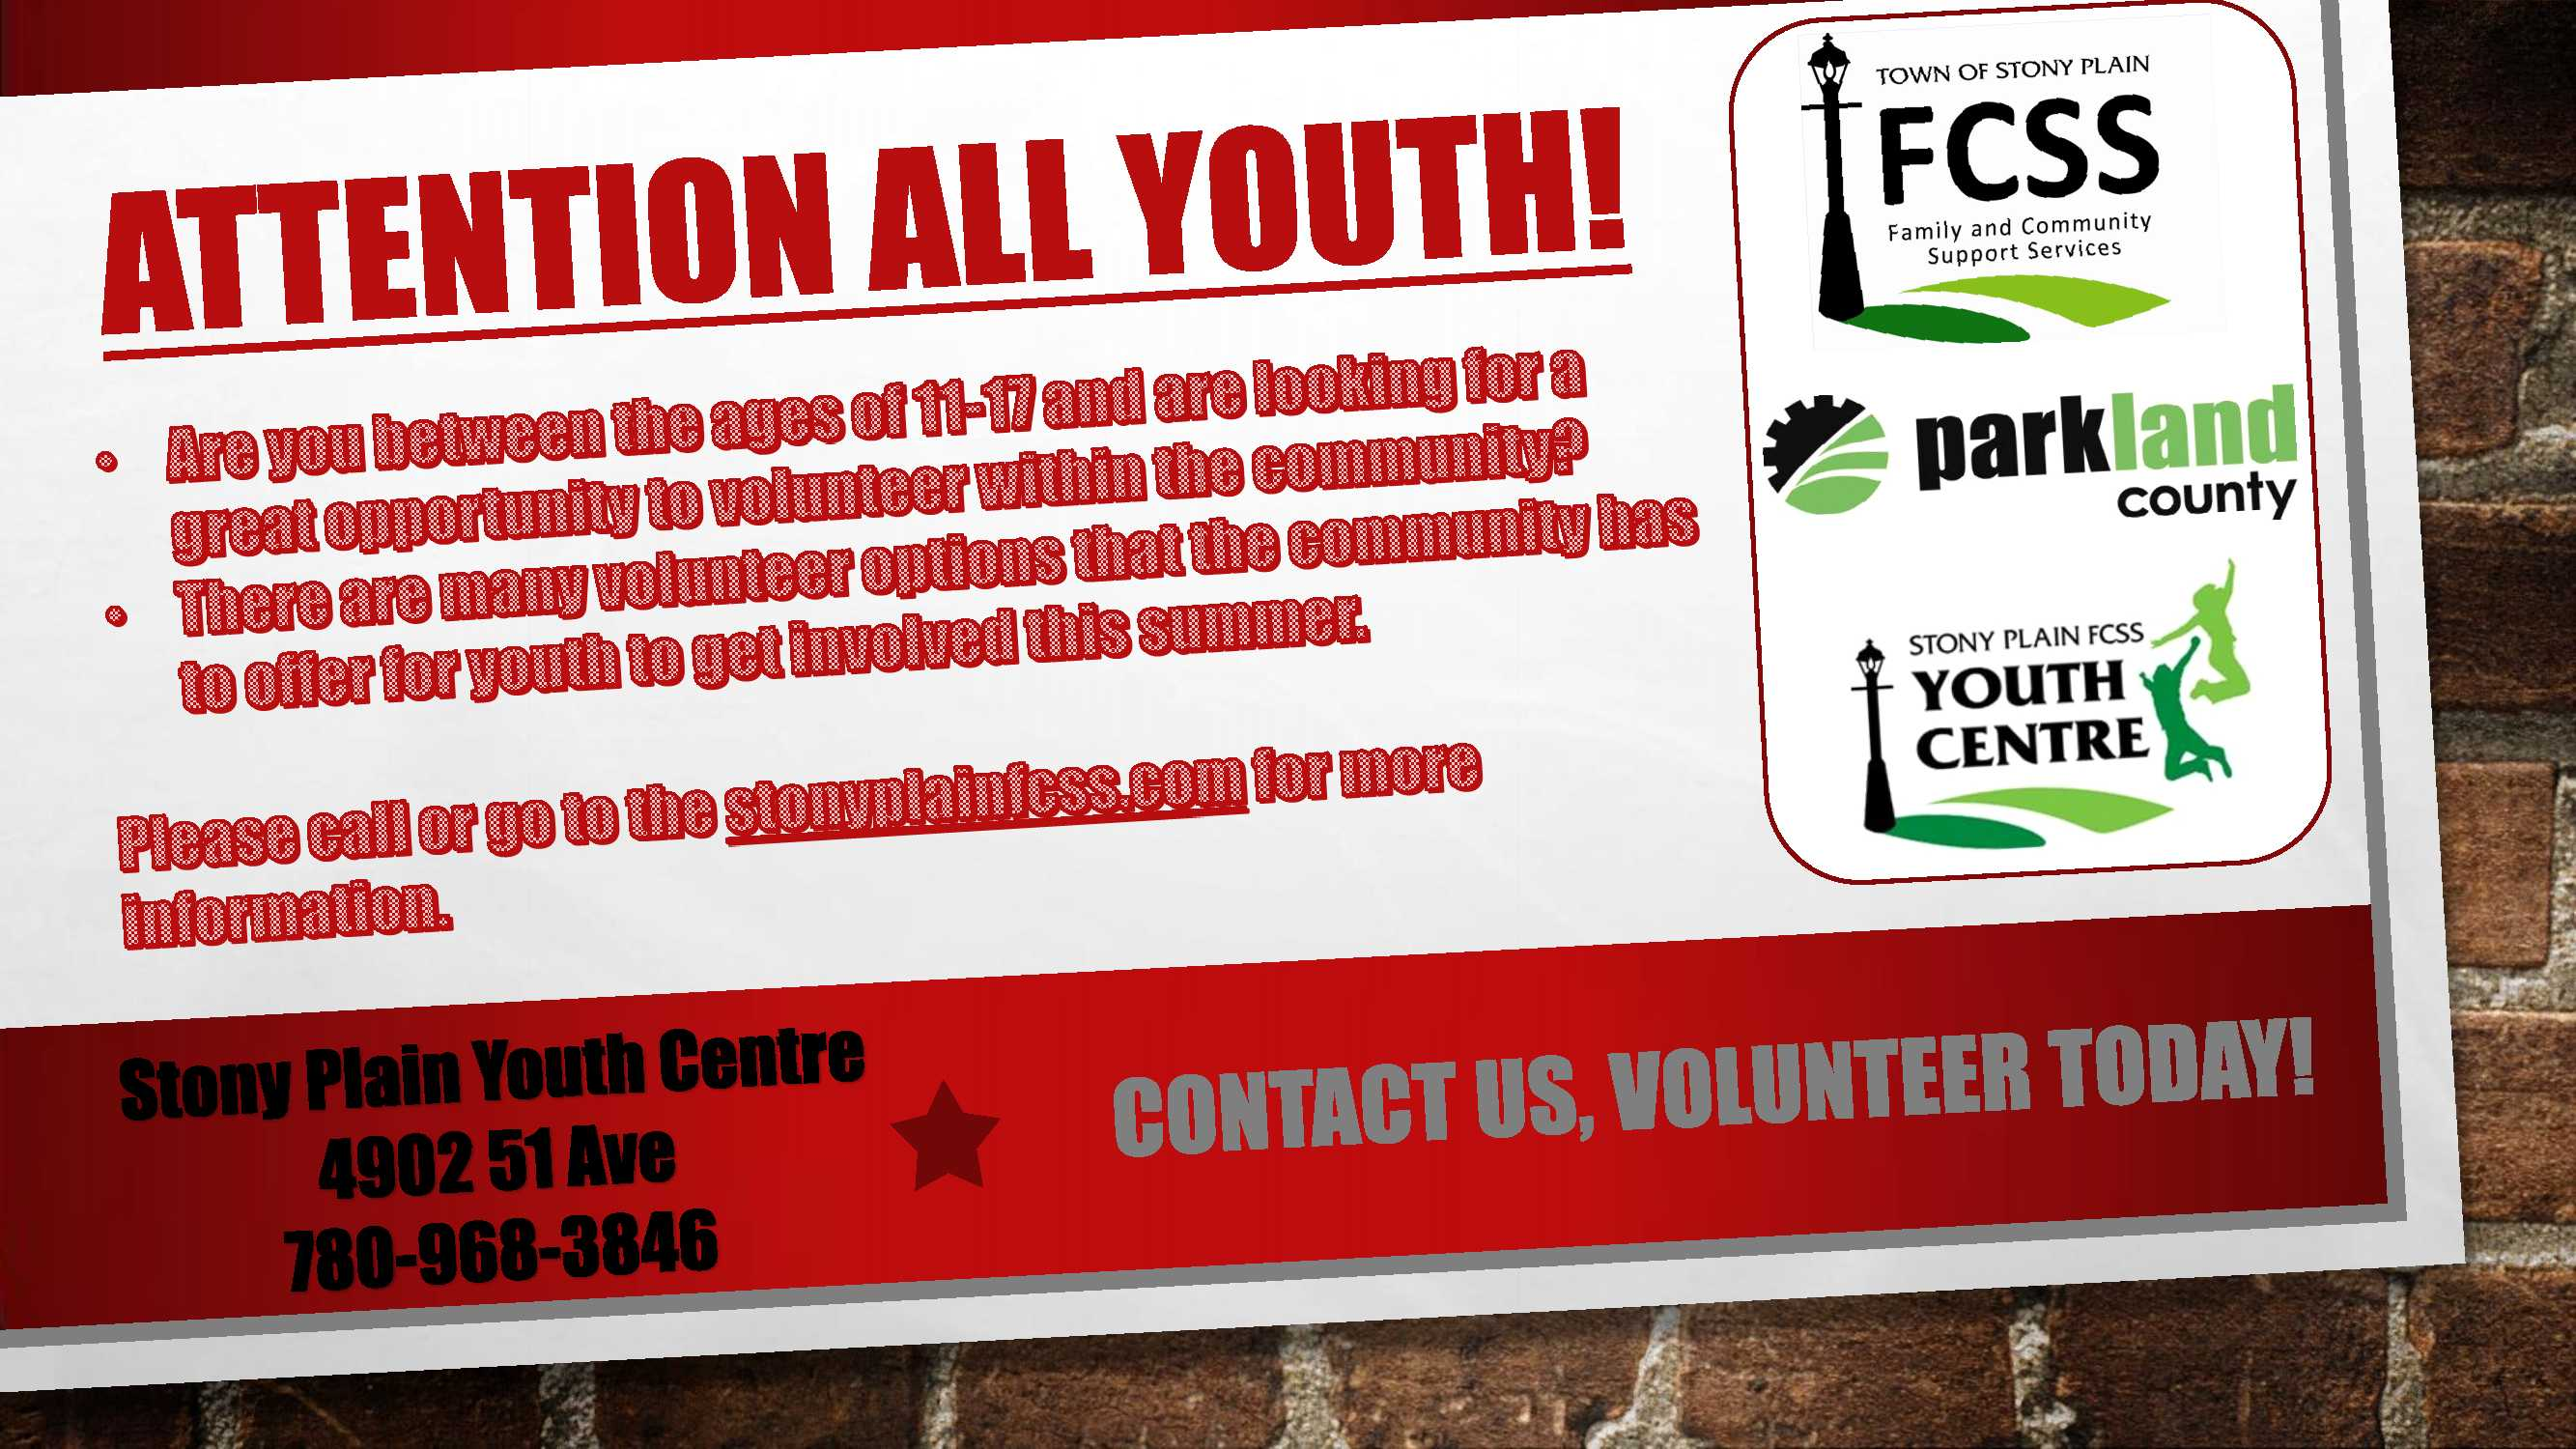 Youth Volunteer Opps